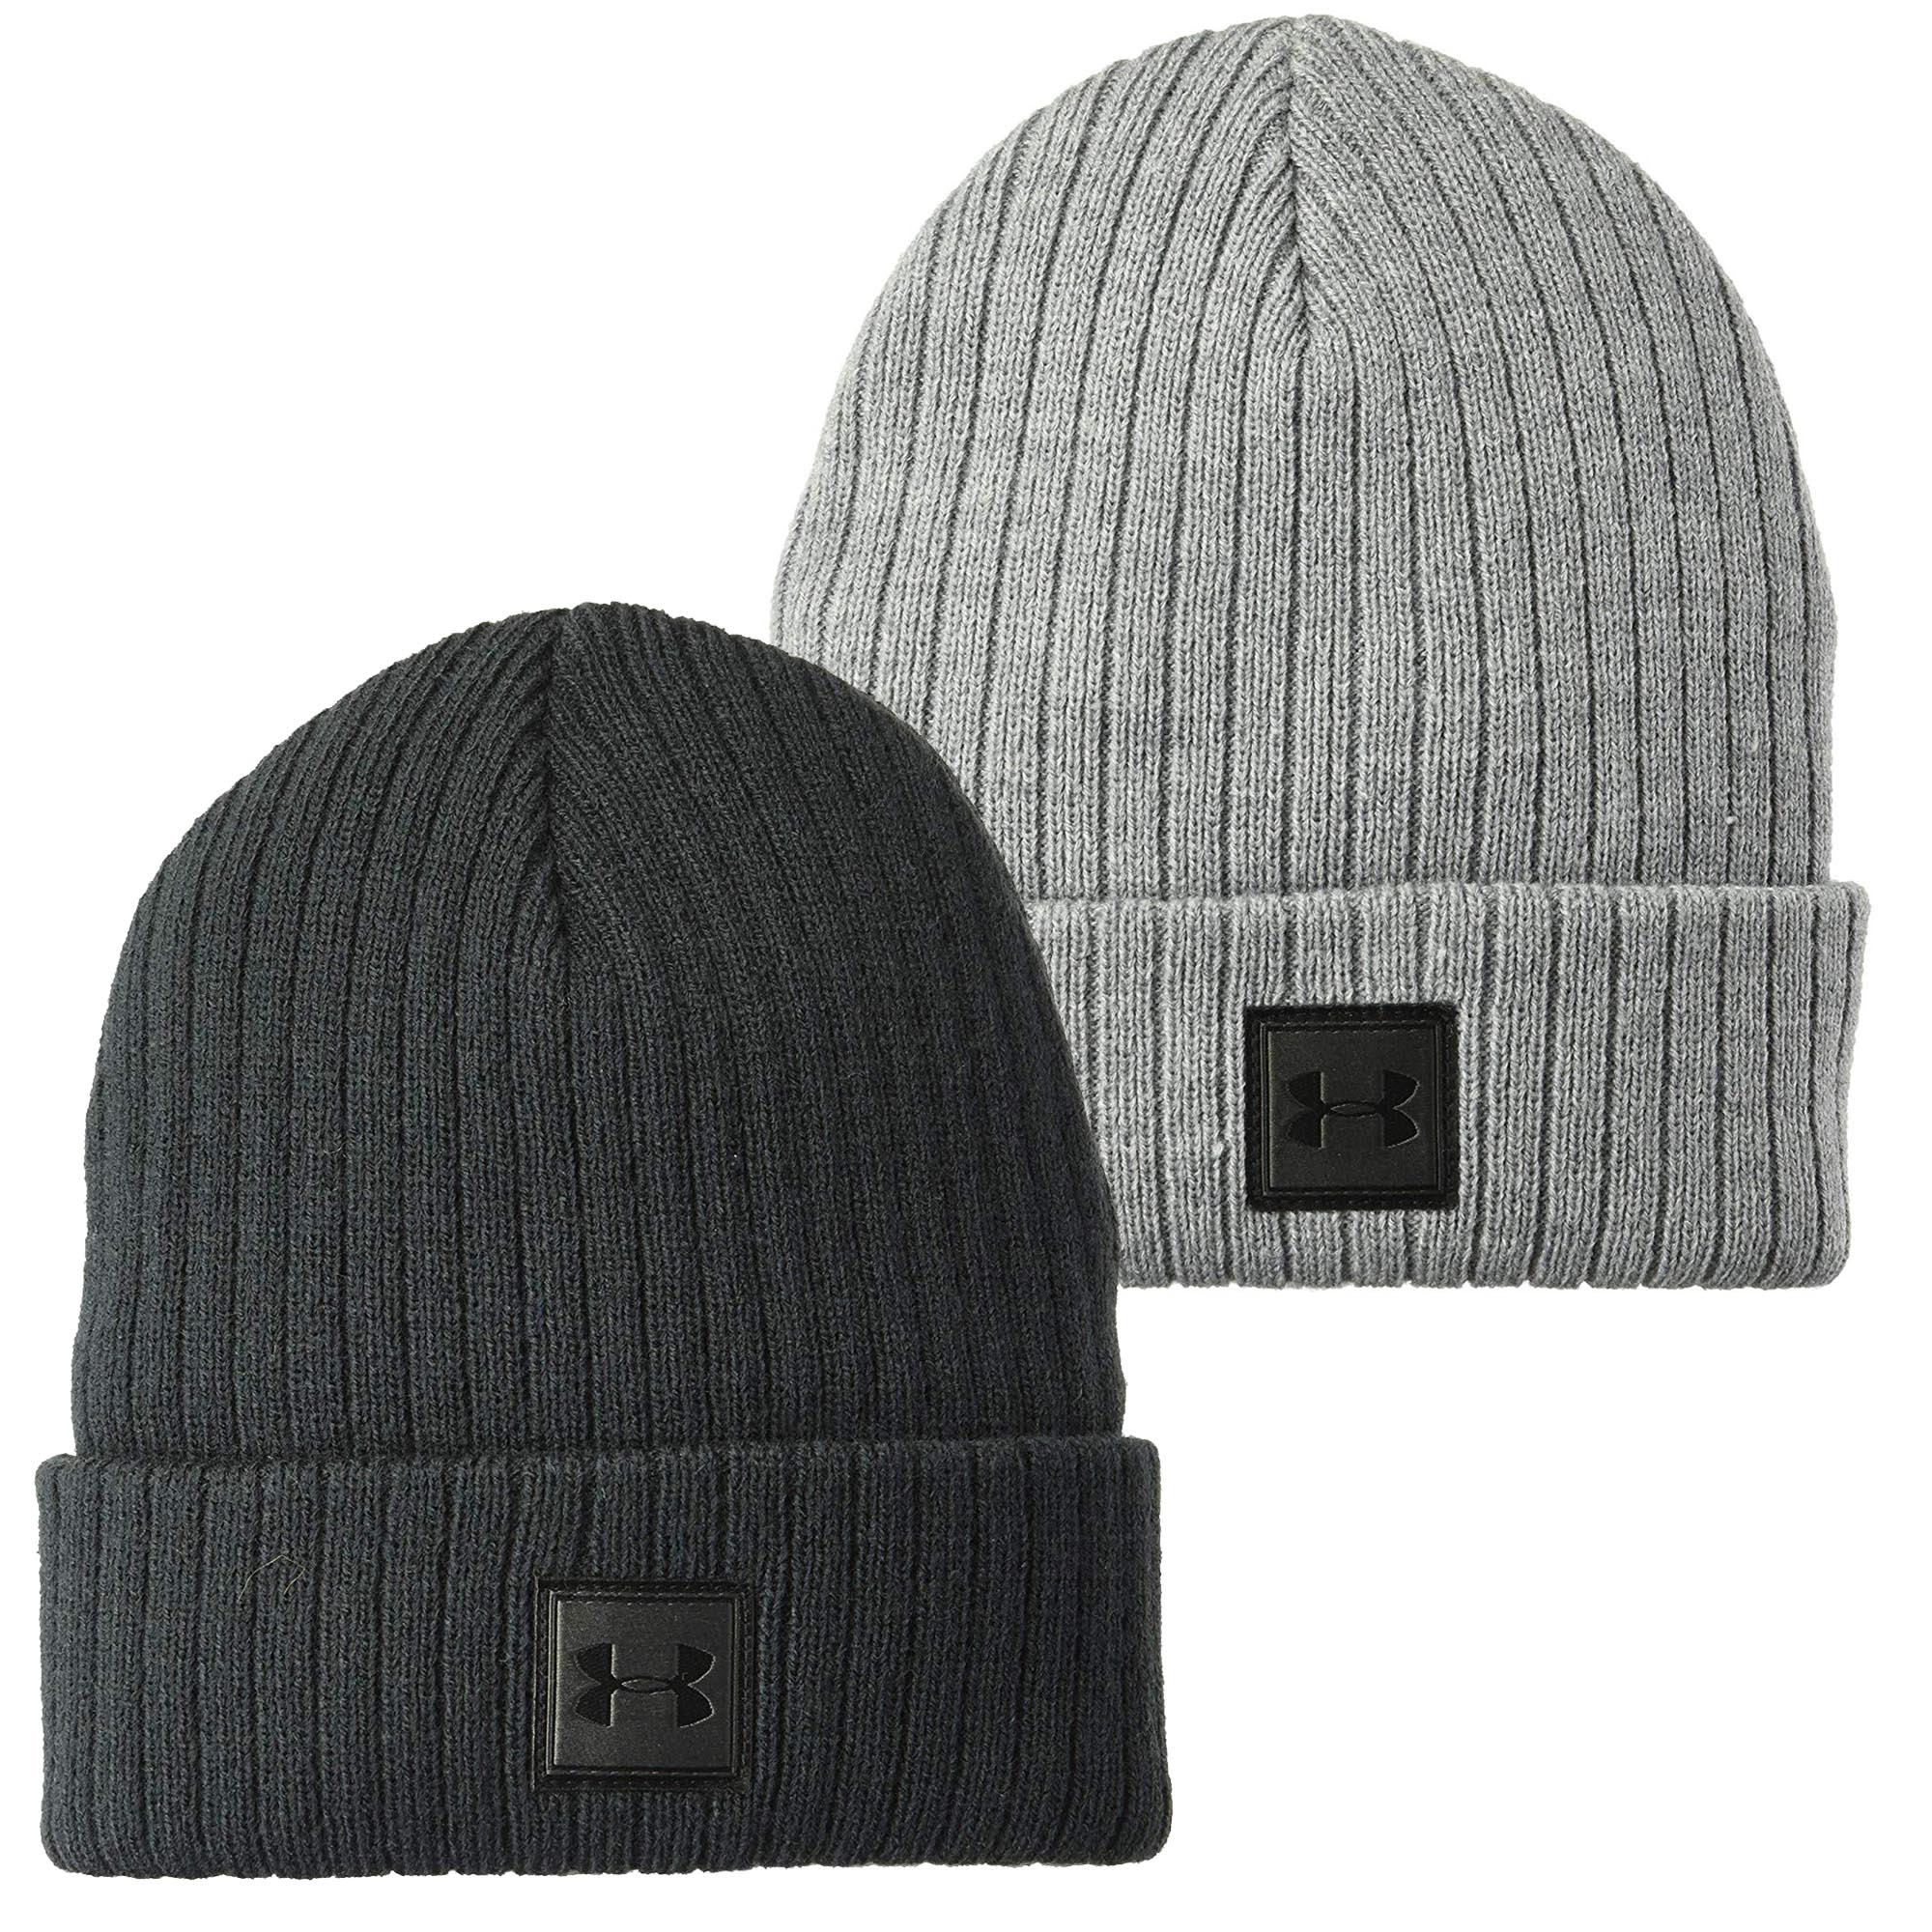 08c722cddcd Details about Under Armour Kids Truckstop 2.0 Ribbed Foldover Winter Beanie  Hat